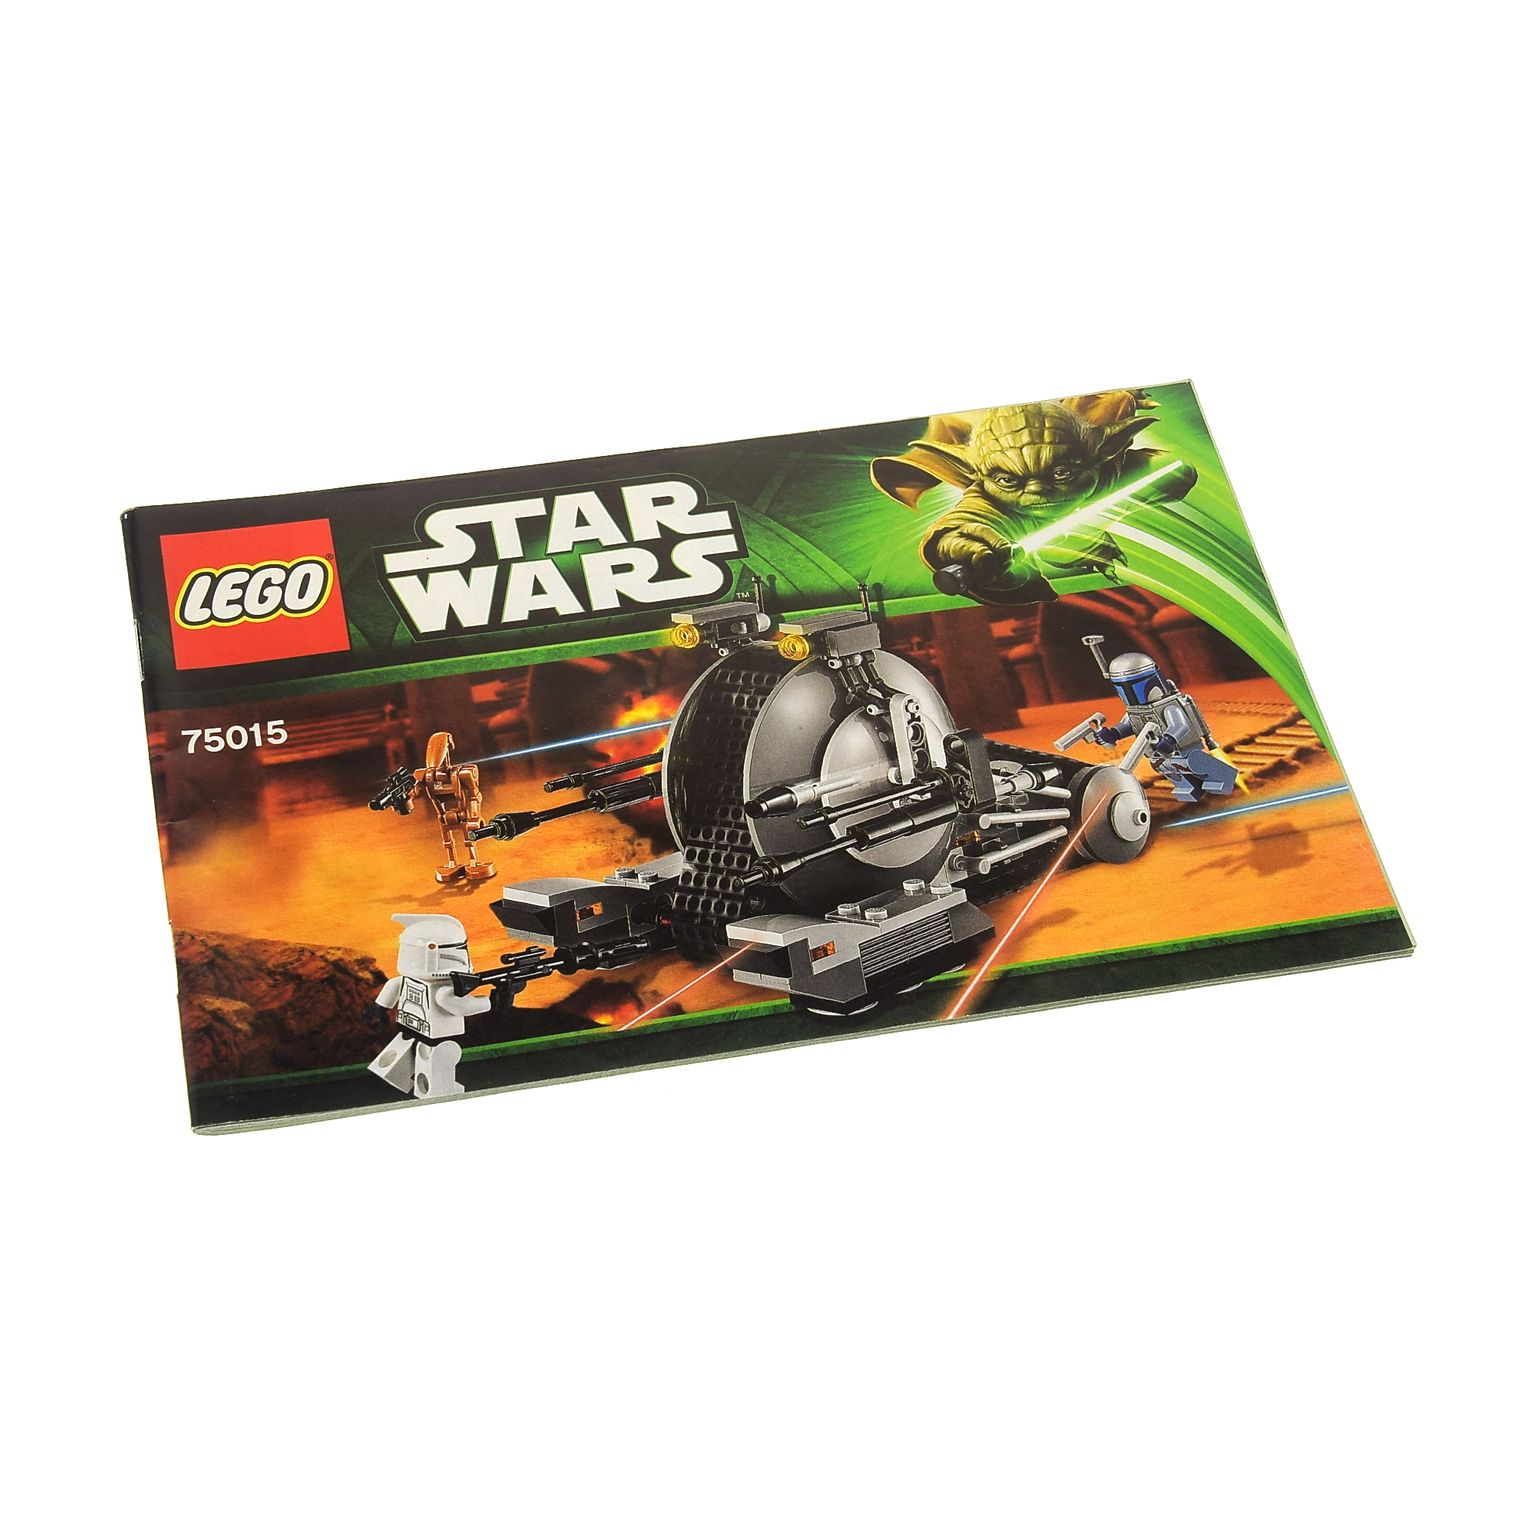 1 X Lego Brick Instructions For Set Star Wars Episode 2 Corporate